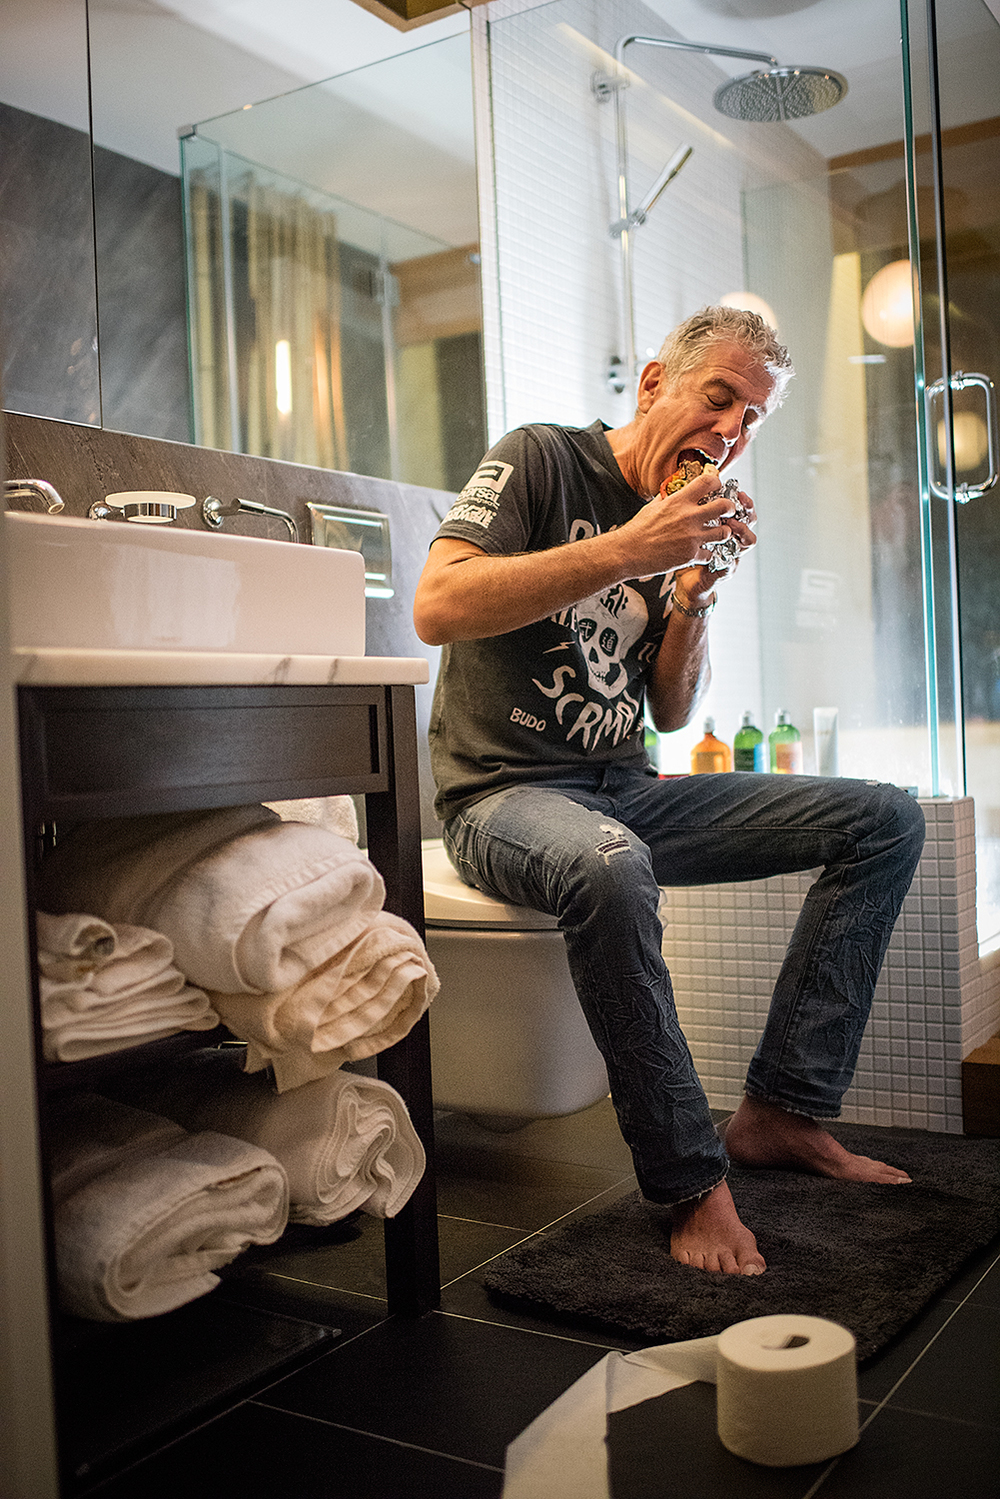 20150720_Anthony_Bourdain-319.jpg